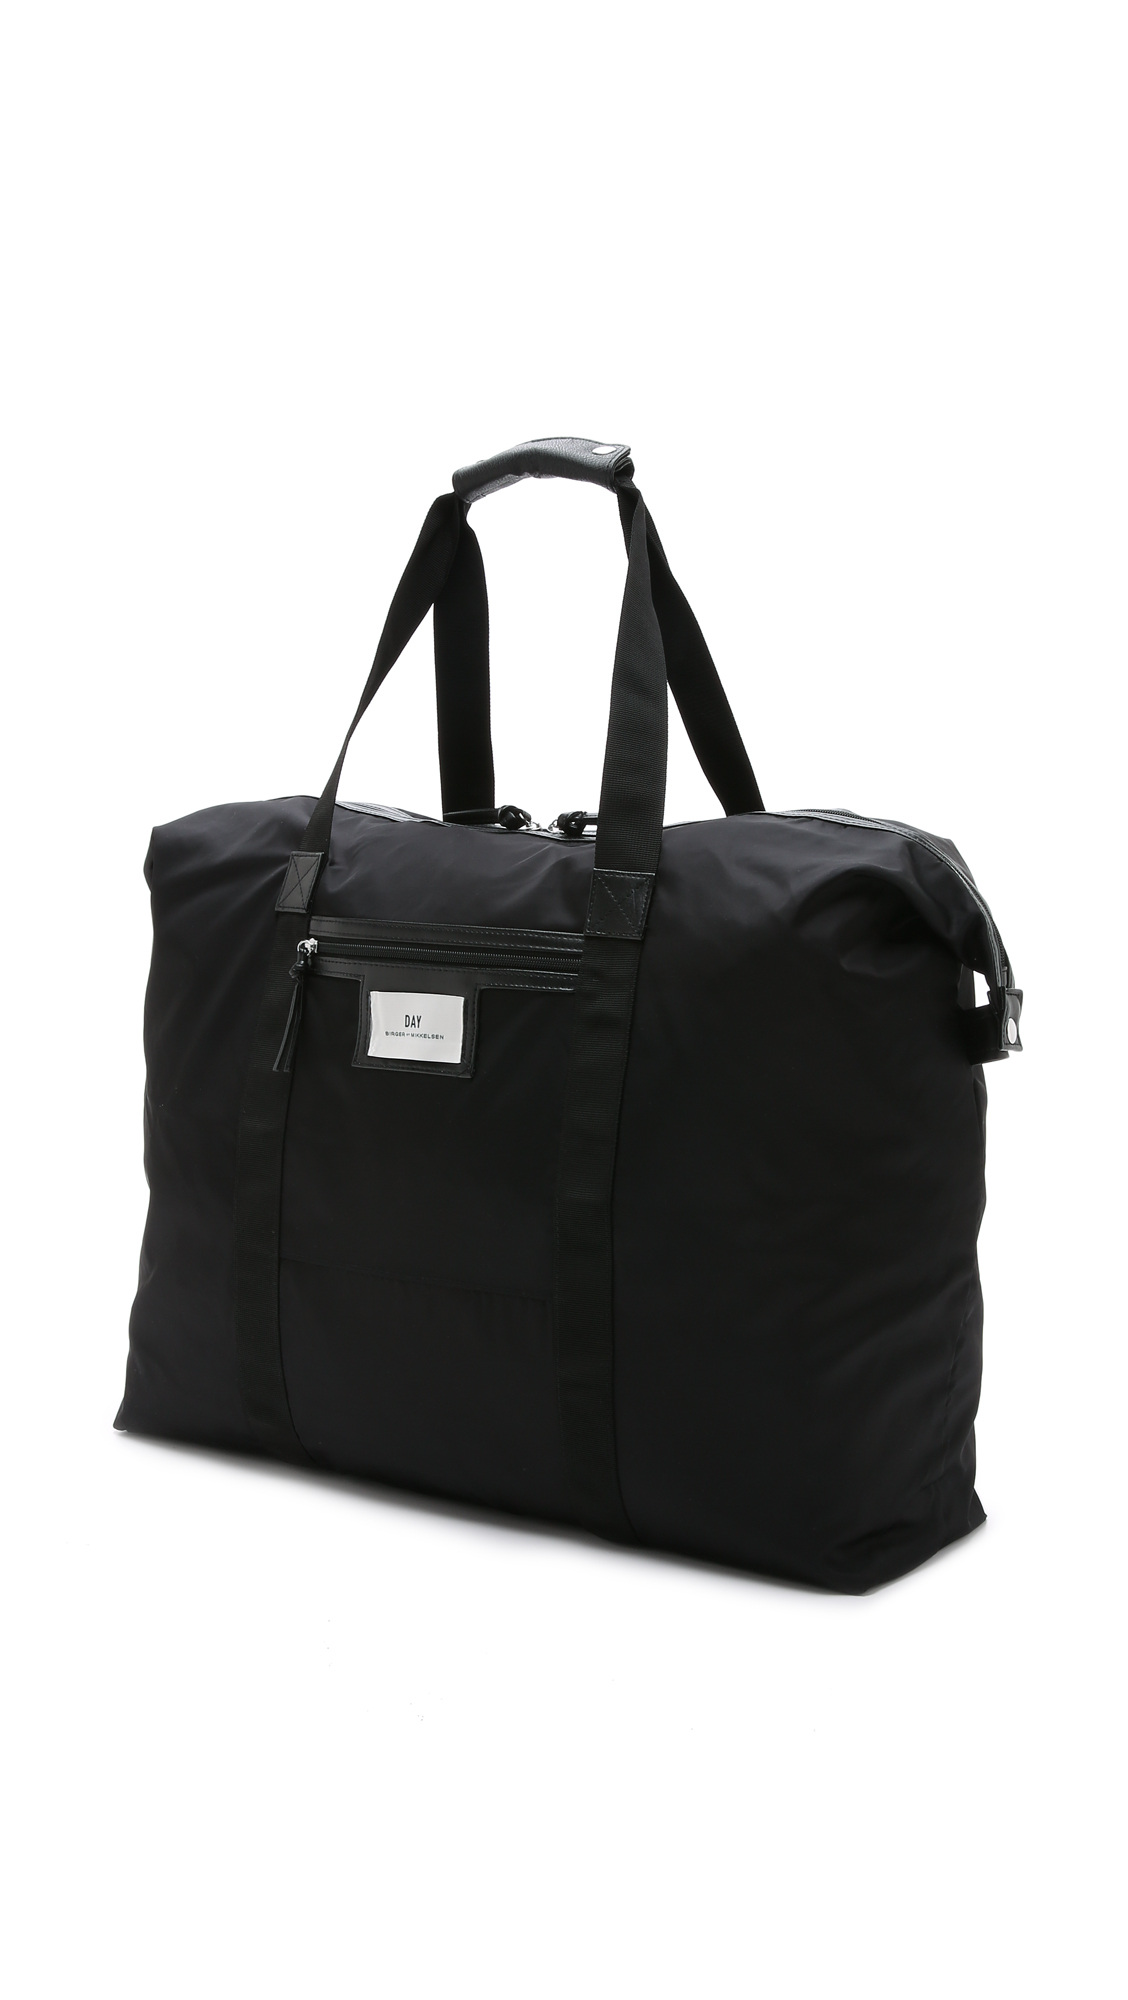 Day birger et mikkelsen Day Gweneth Weekend Bag - Black in Black ...